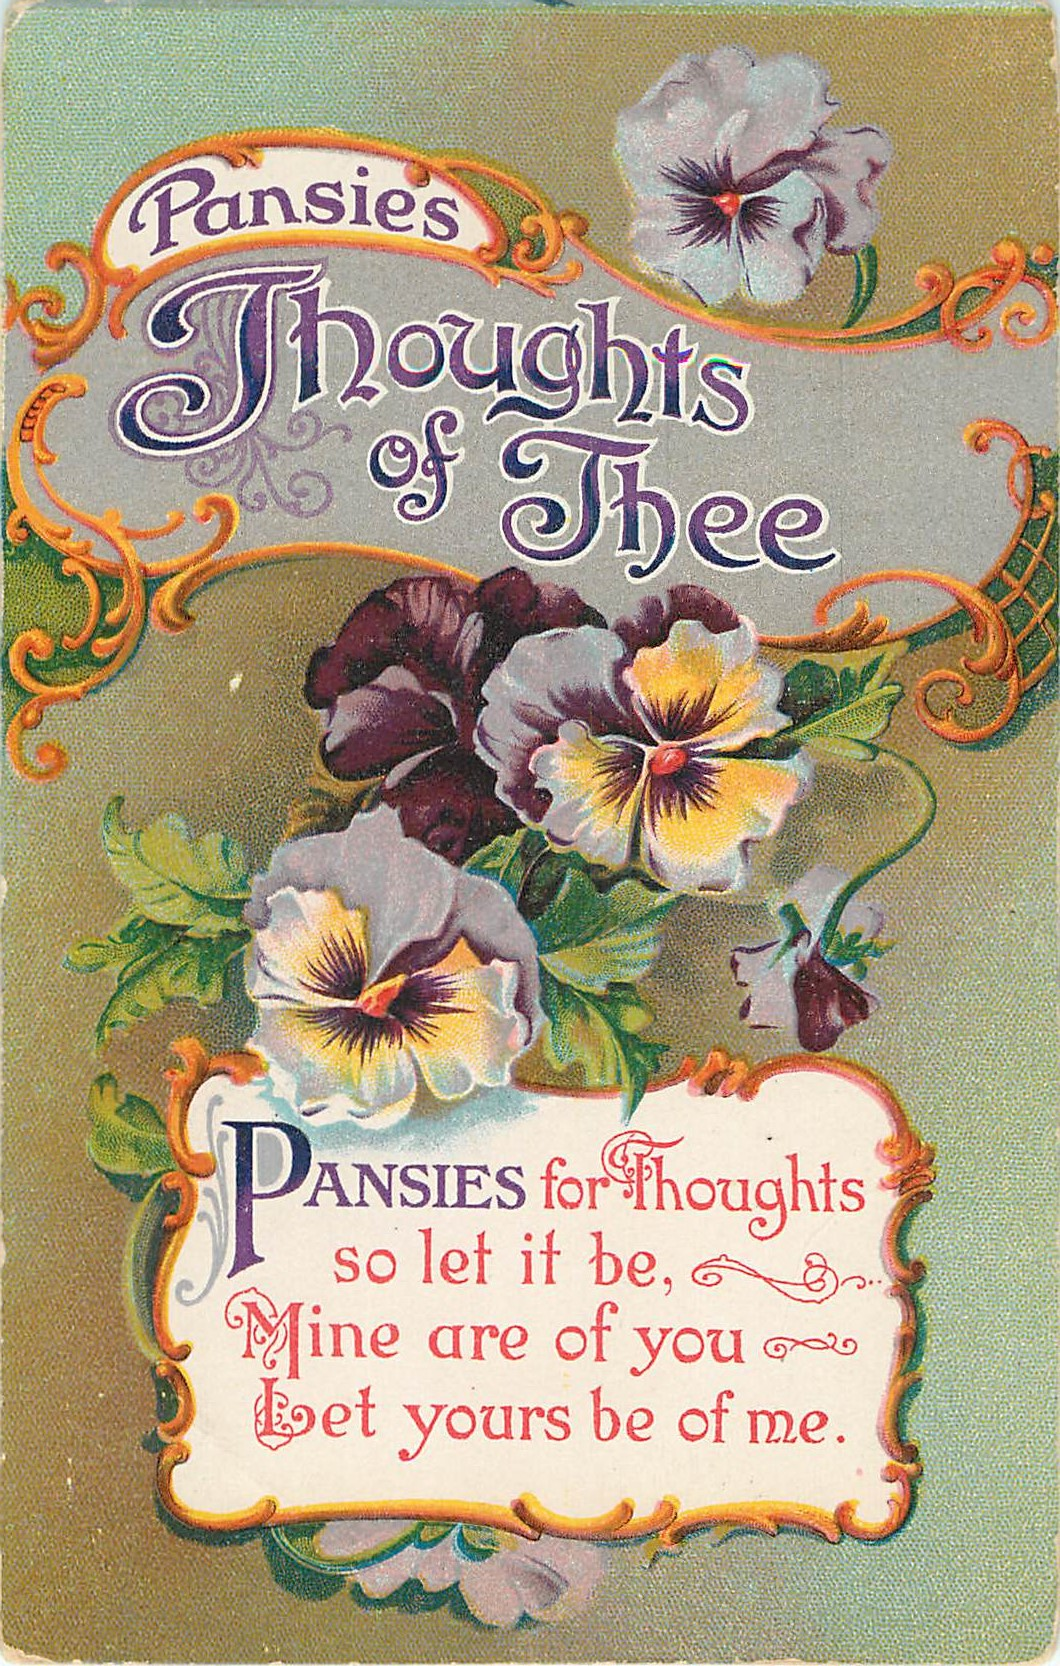 Pansies Thoughts of Thee